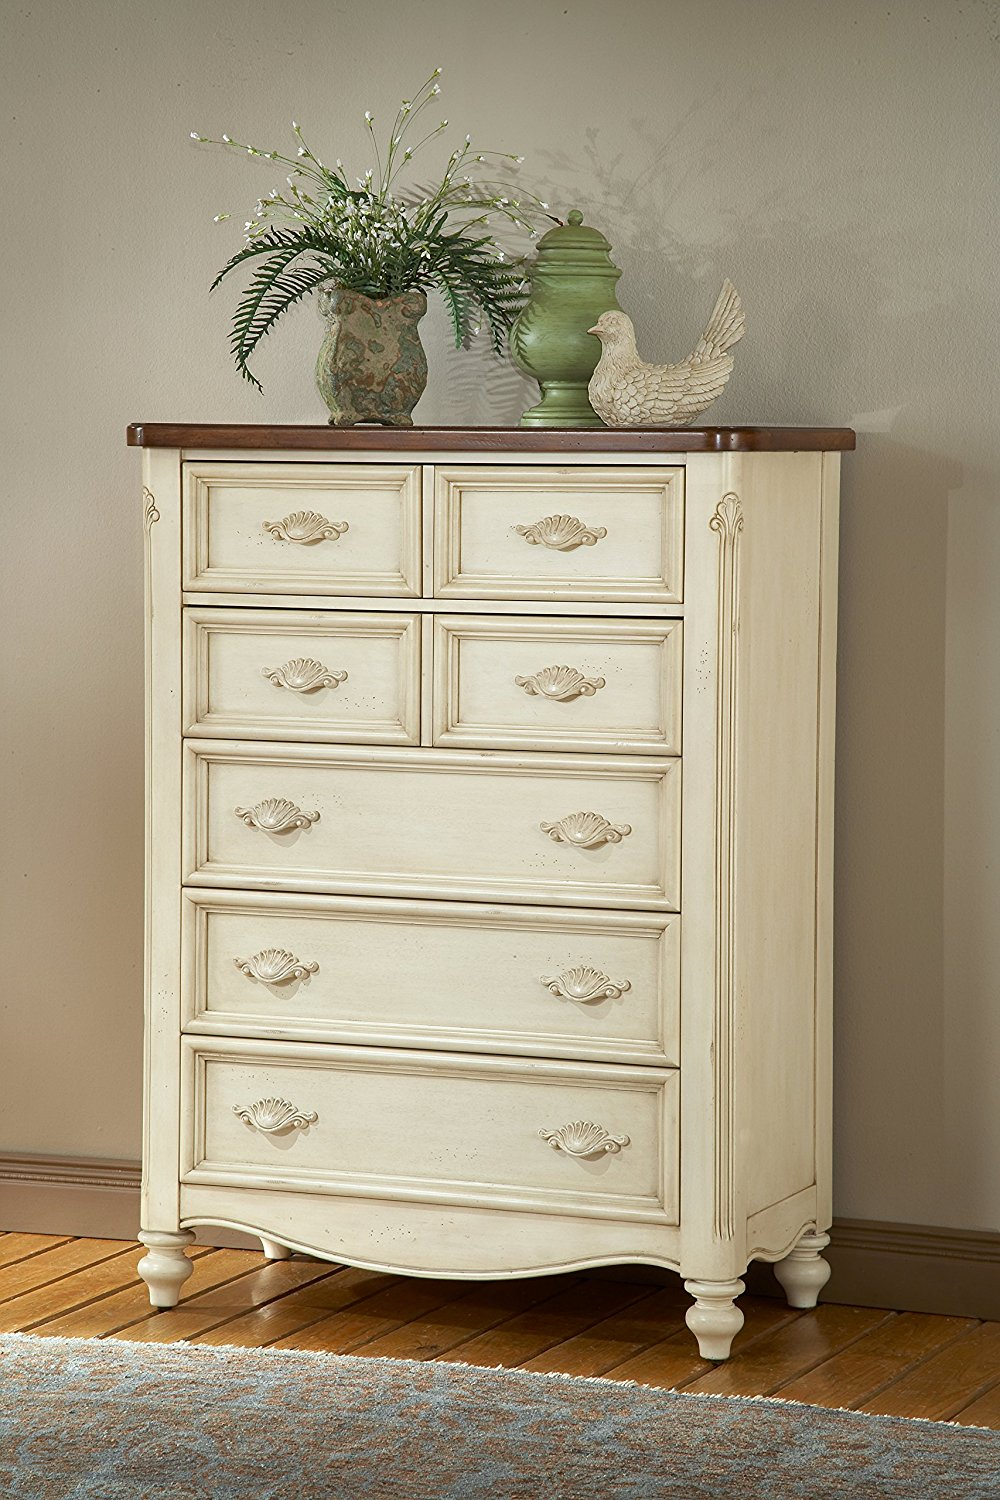 Hopen 6 Drawer Chest Dimensions